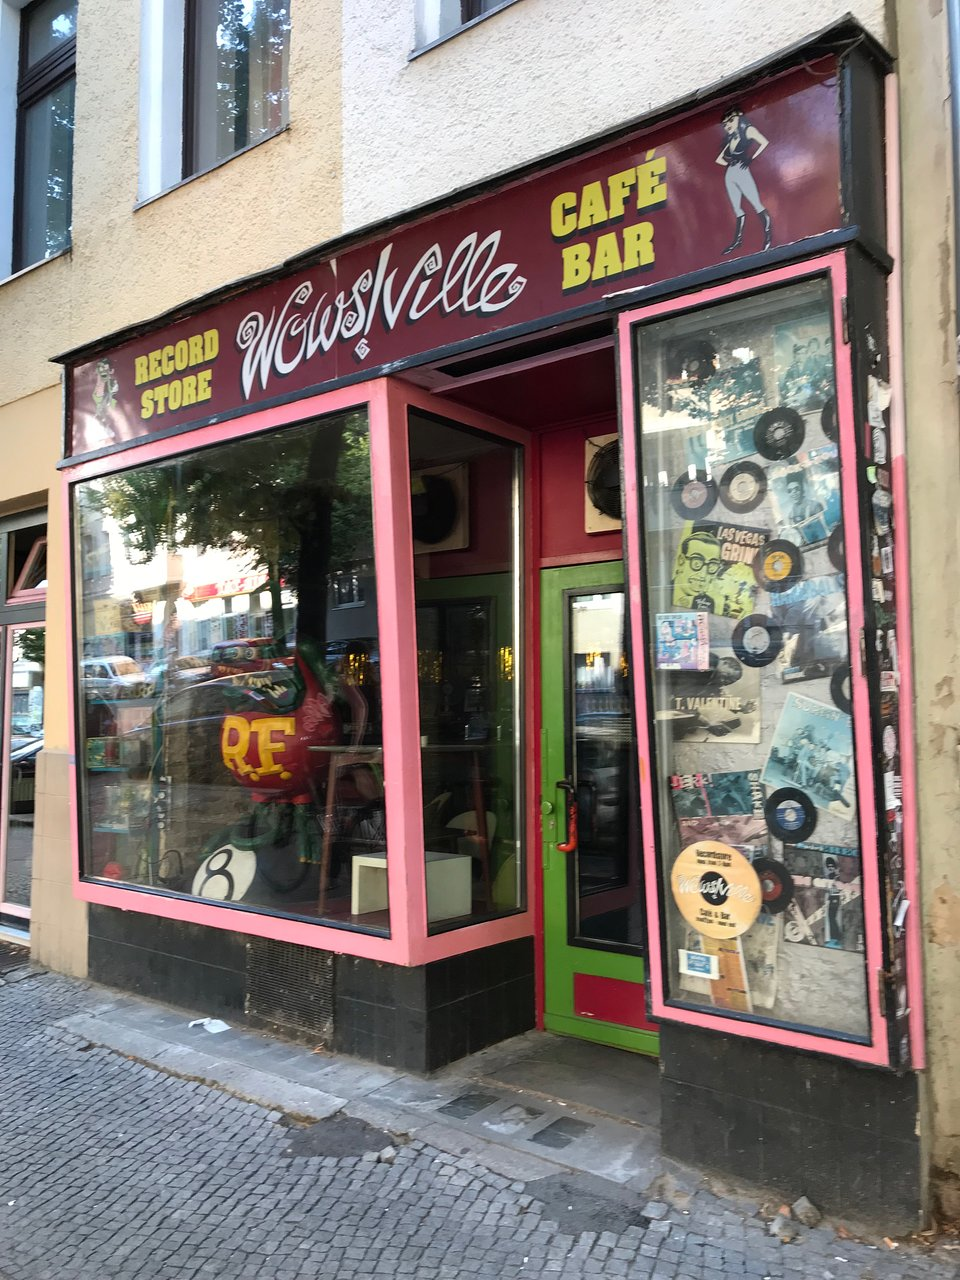 Restaurant Kreuzberg Volt Wowsville Berlin Updated 2019 All You Need To Know